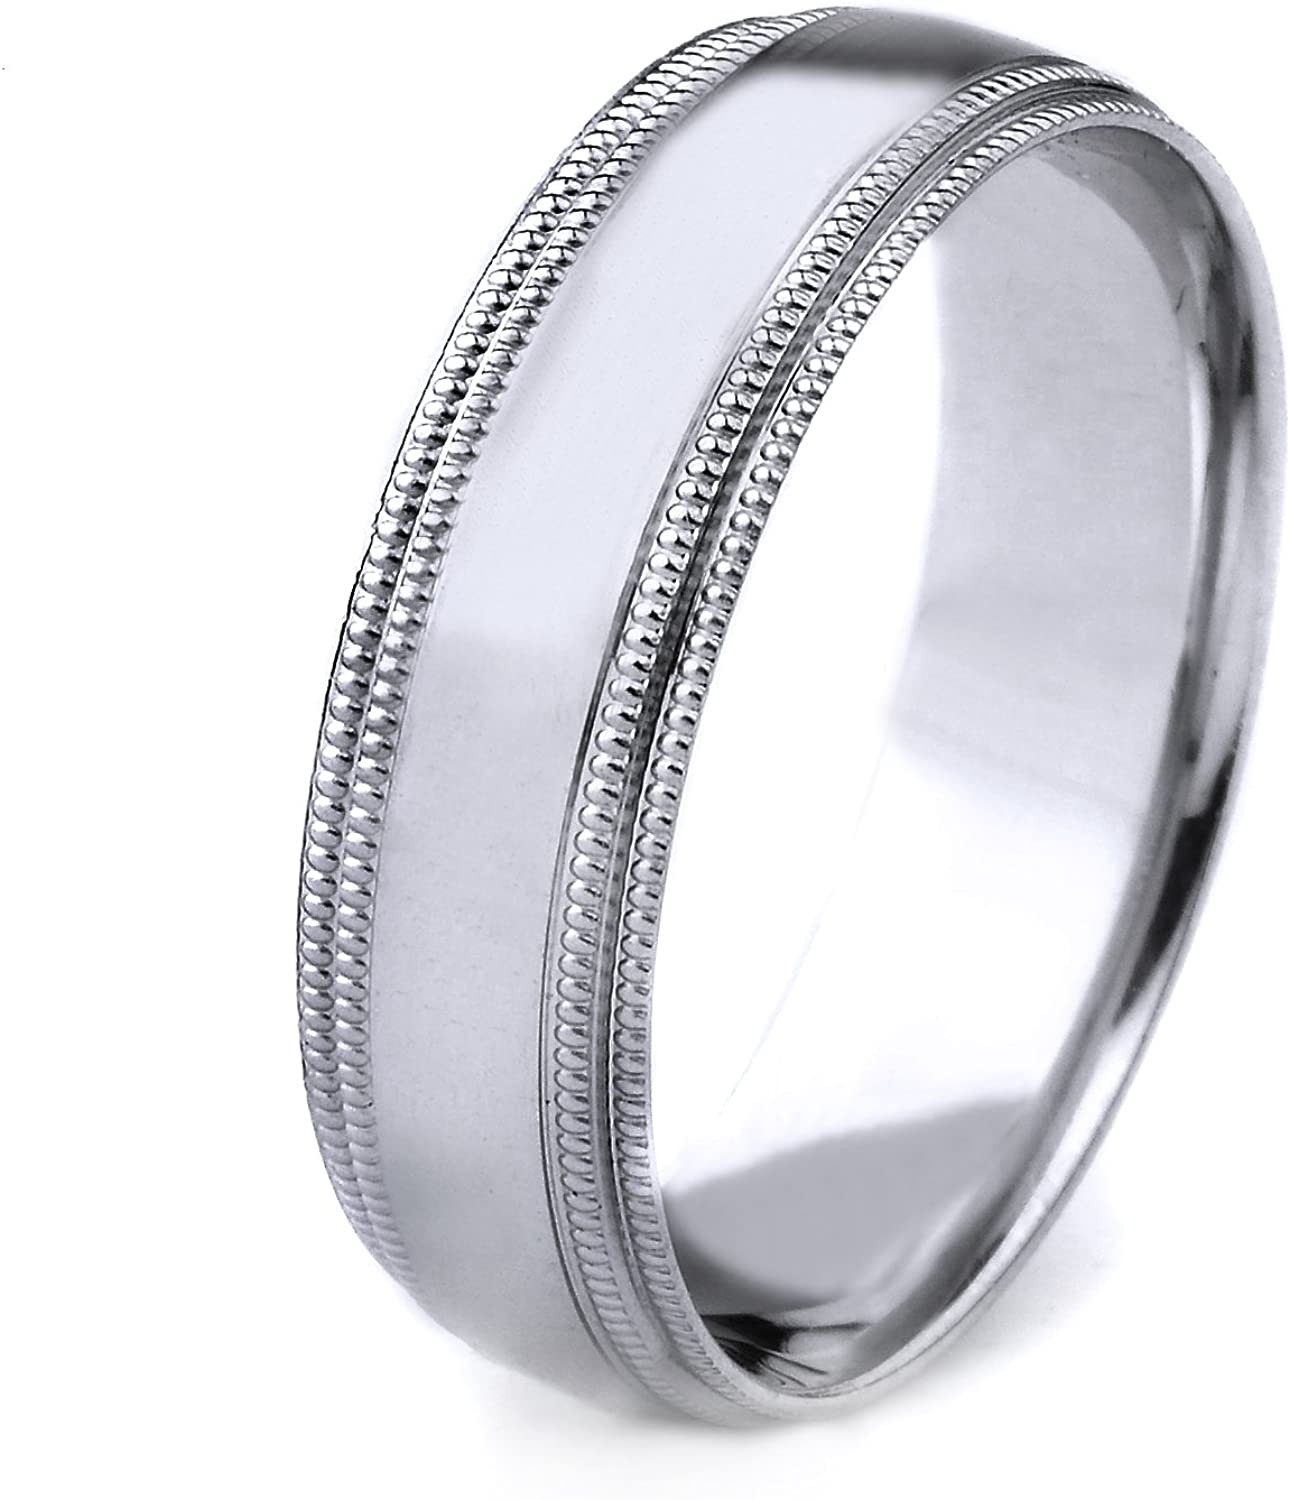 6mm AFFINE Jewelry 10k Gold Mens Comfort-Fit Plain Wedding Band with Double Milgrain Edges and Polished Center